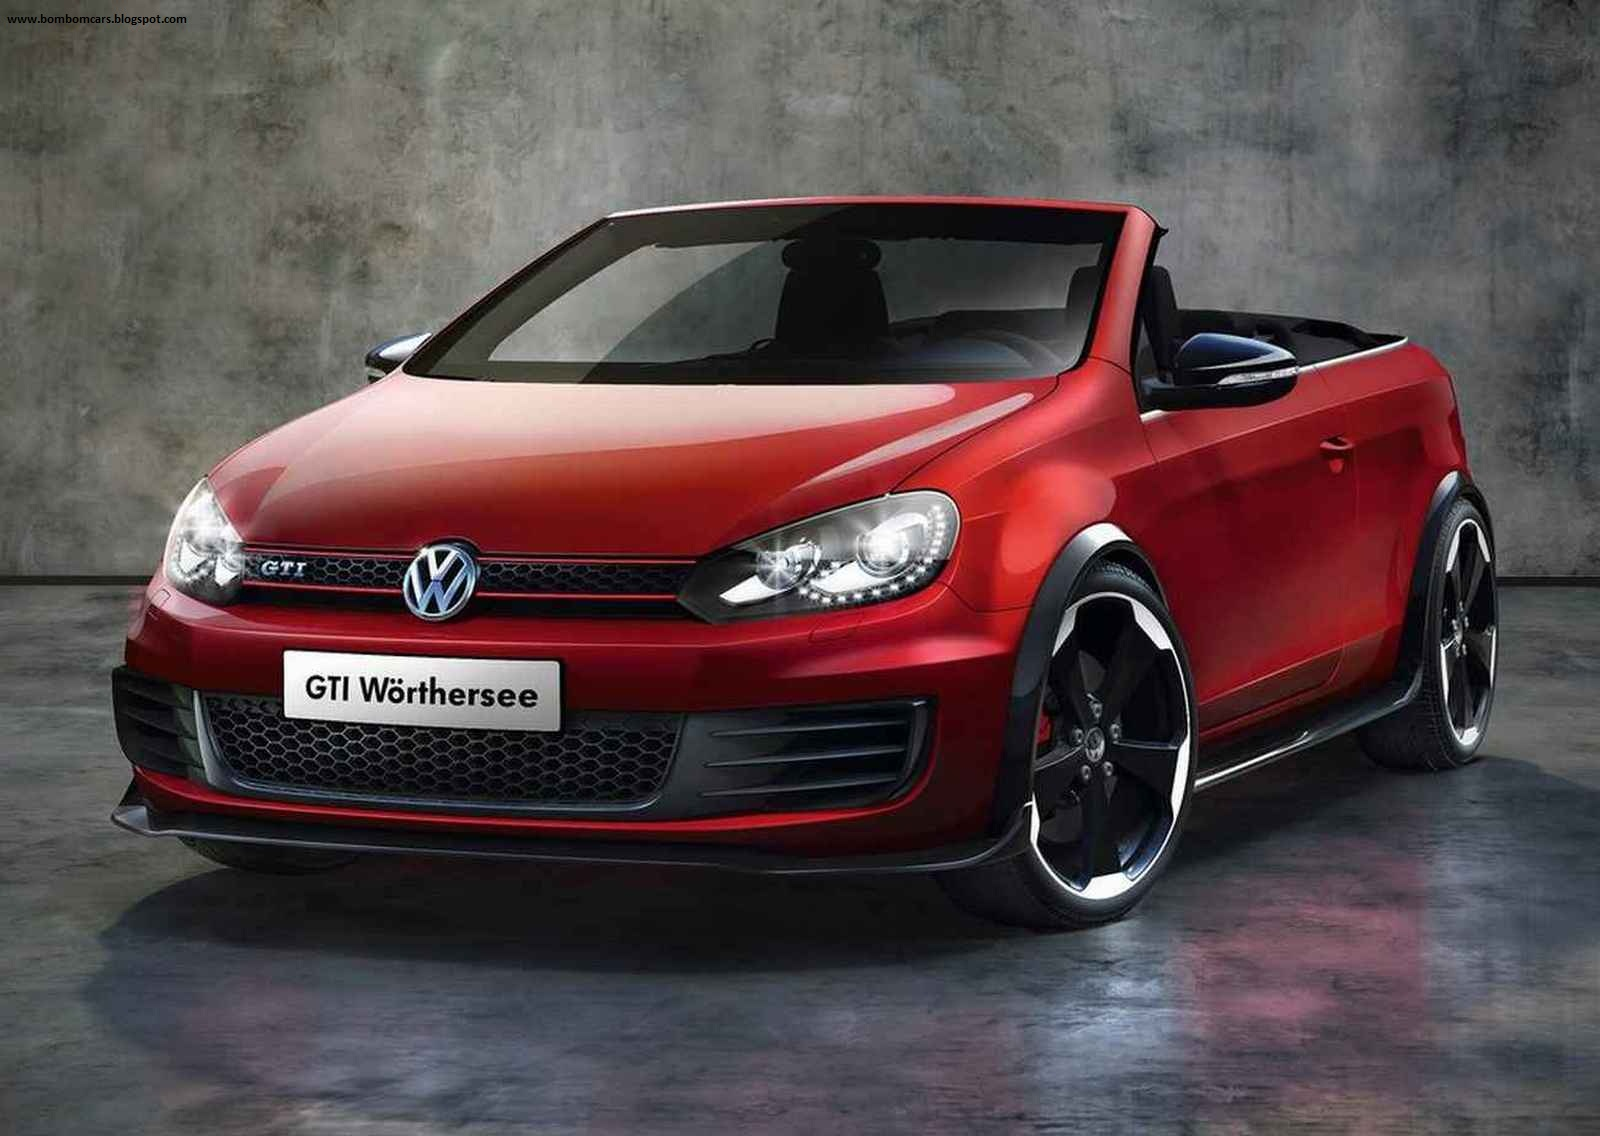 Visual Highlights: The Front Fog Lights Of The GTI Gave Way To Air Guides  For Ventilating The High Performance Brake System That Is Used In The  Cabriolet.